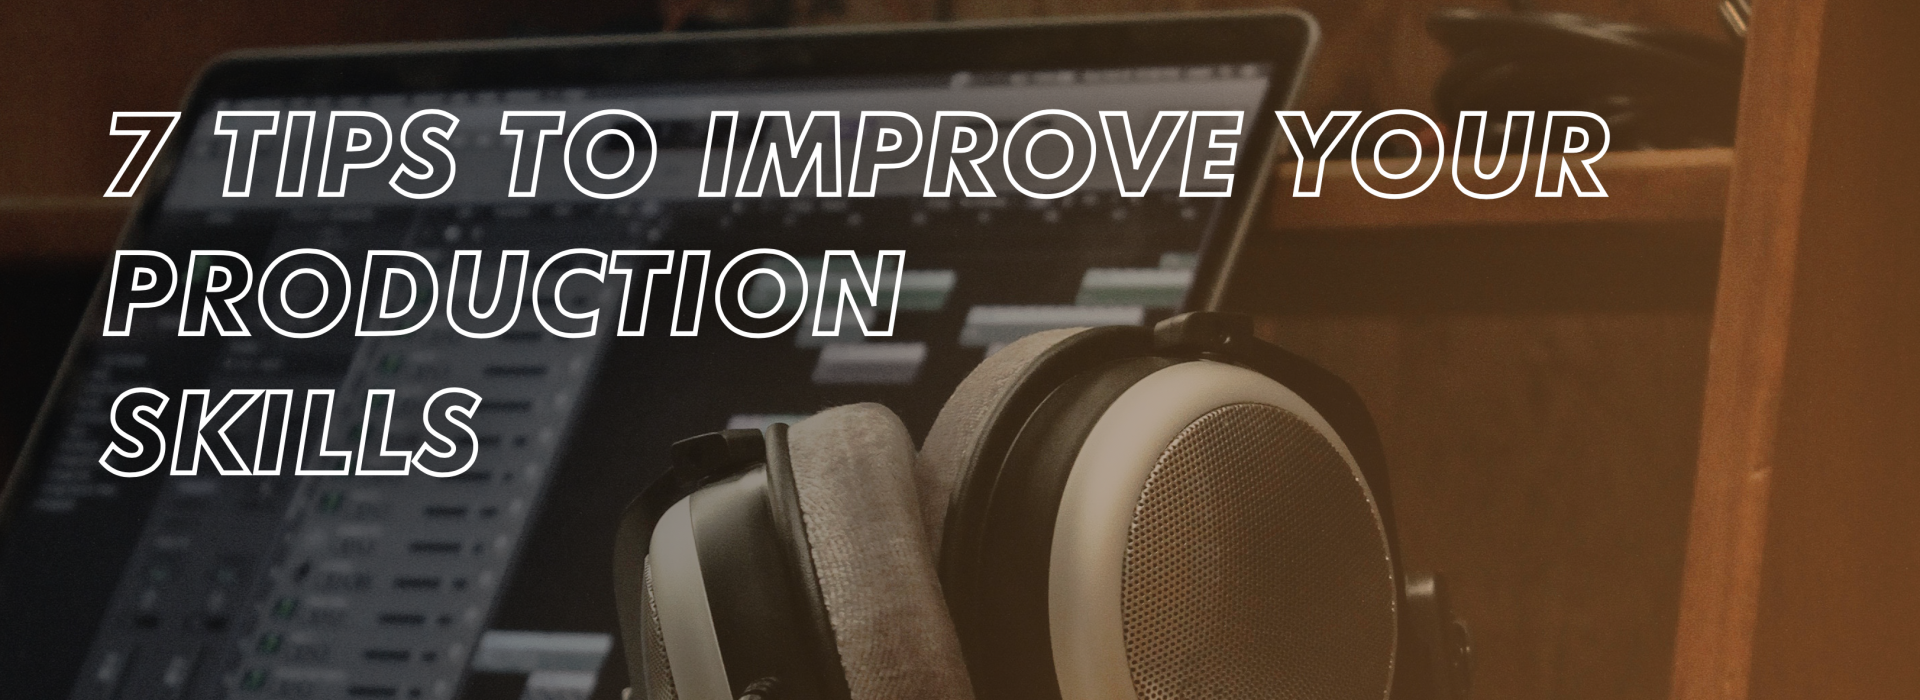 8 Tips To Improve Your Music Production Skills